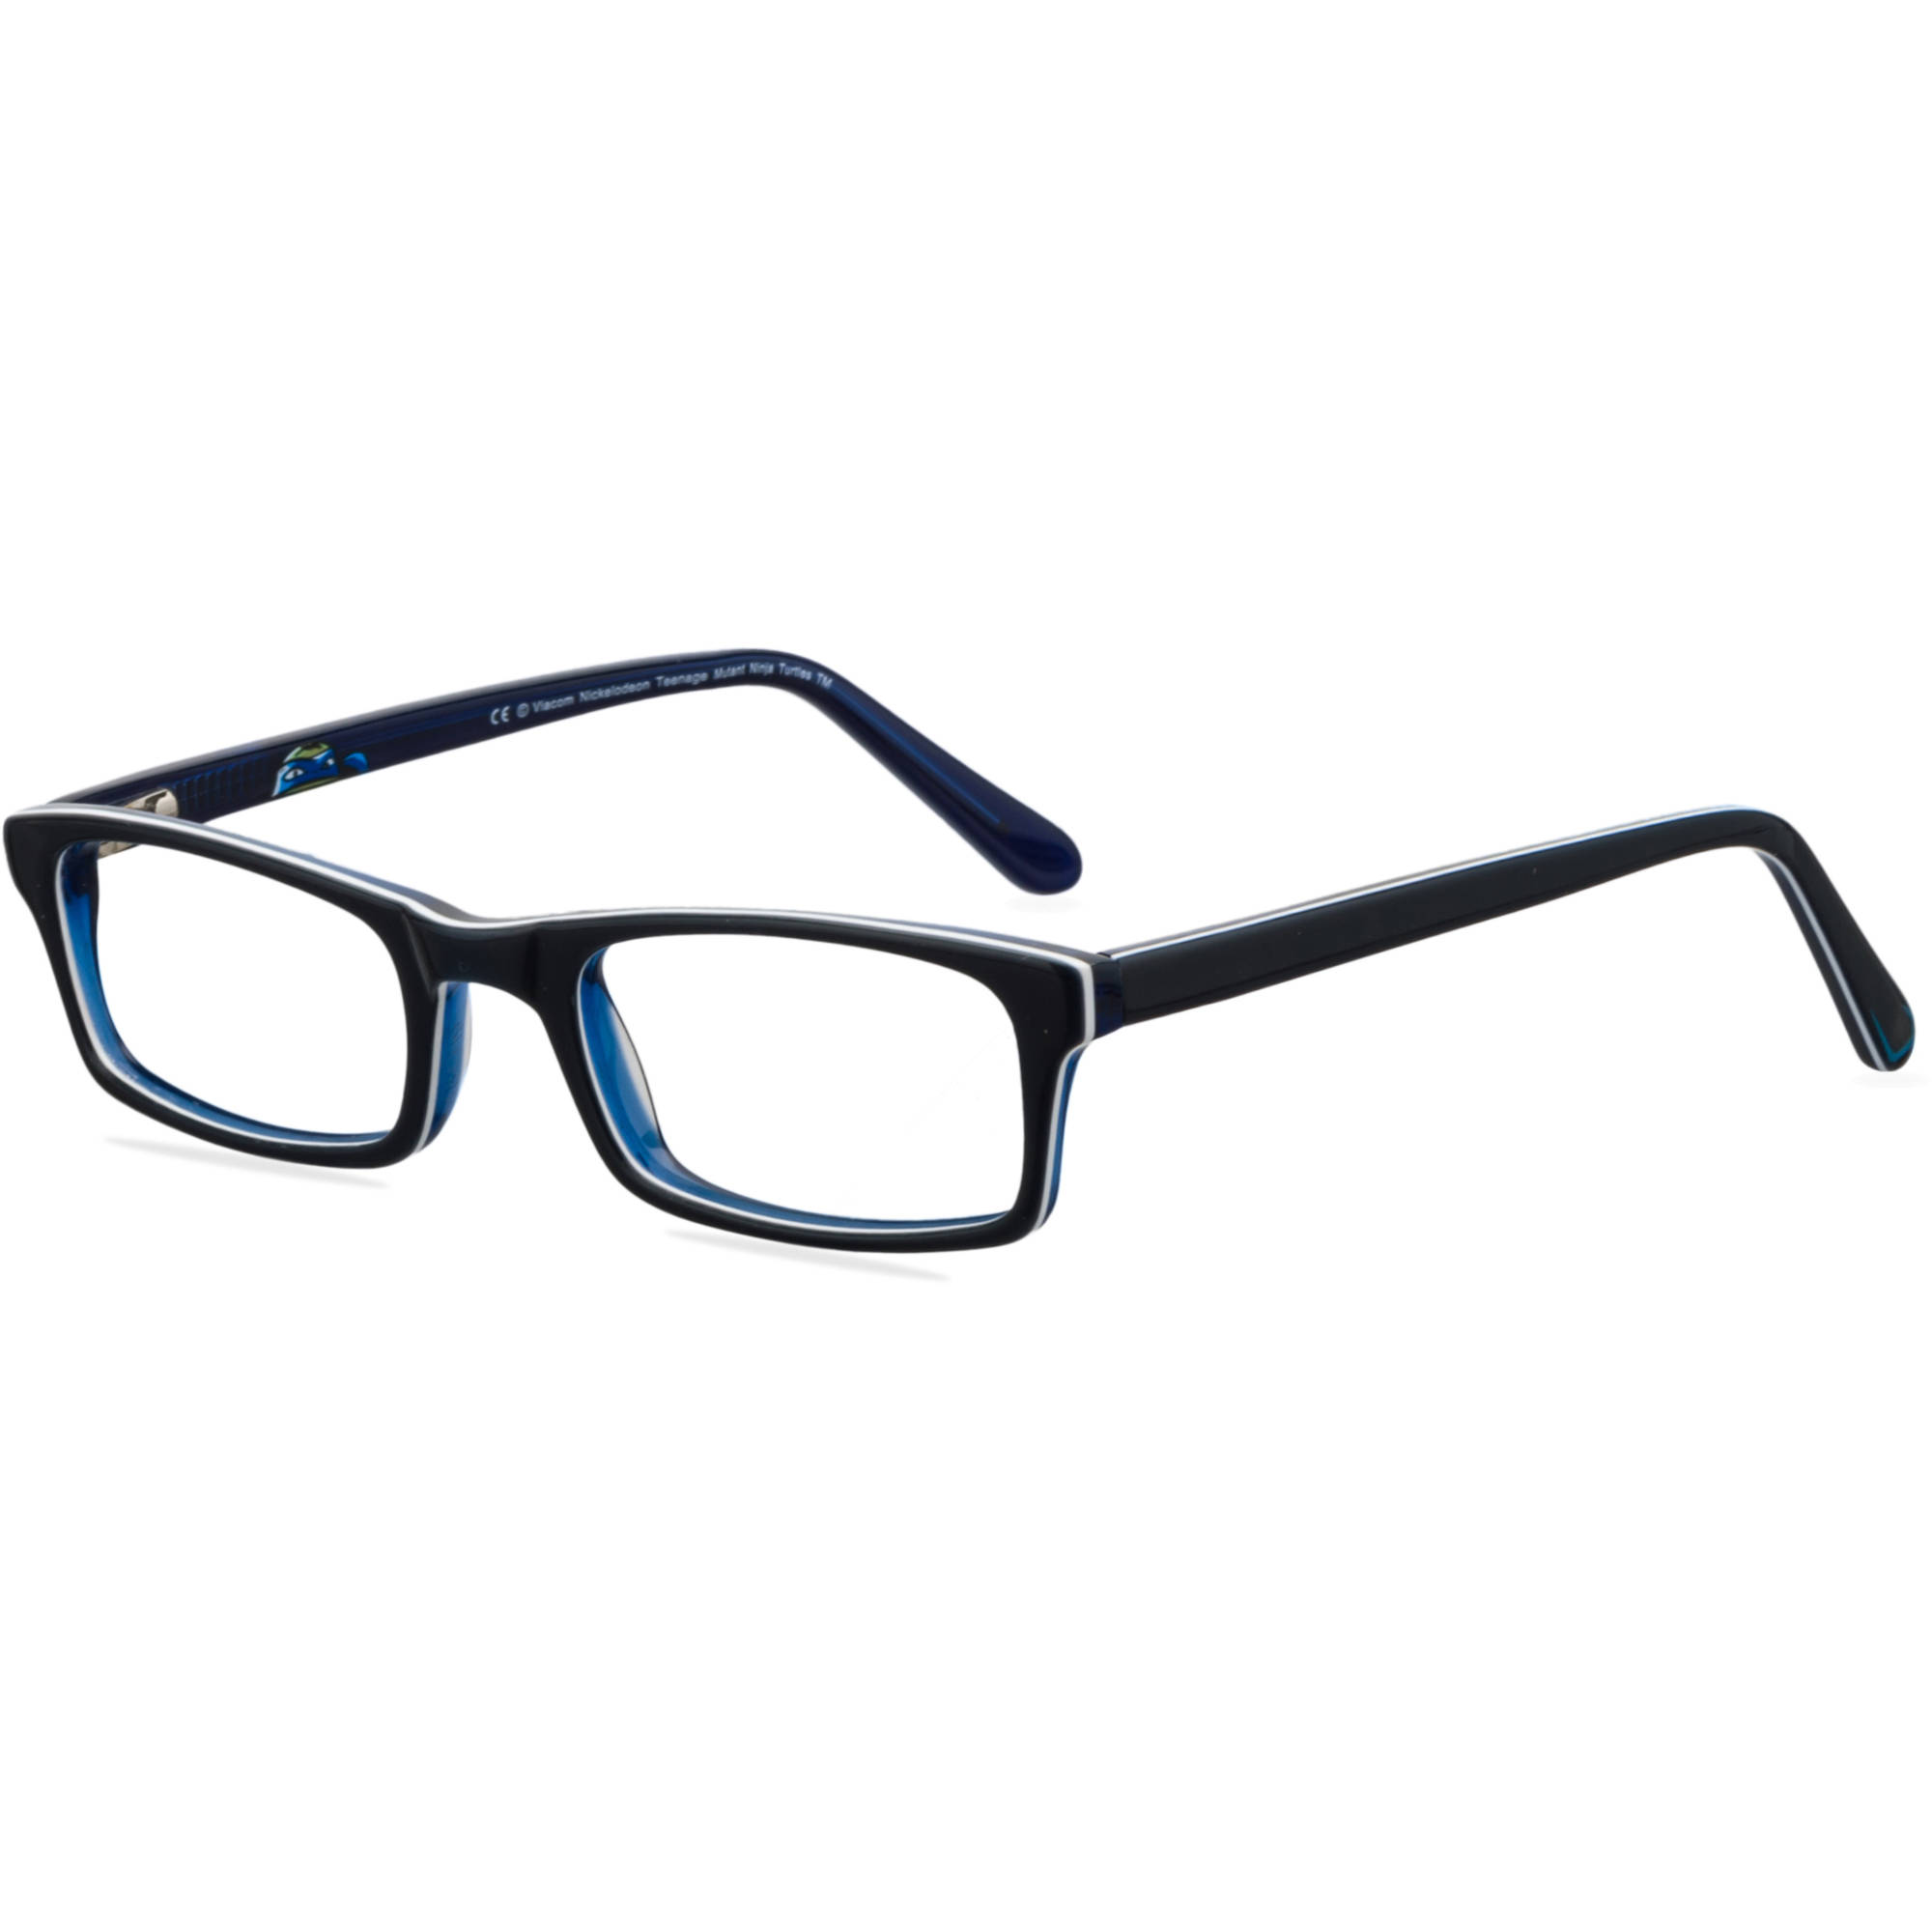 Teenage Mutant Ninja Turtles Boys Prescription Glasses, TM04 Navy ...